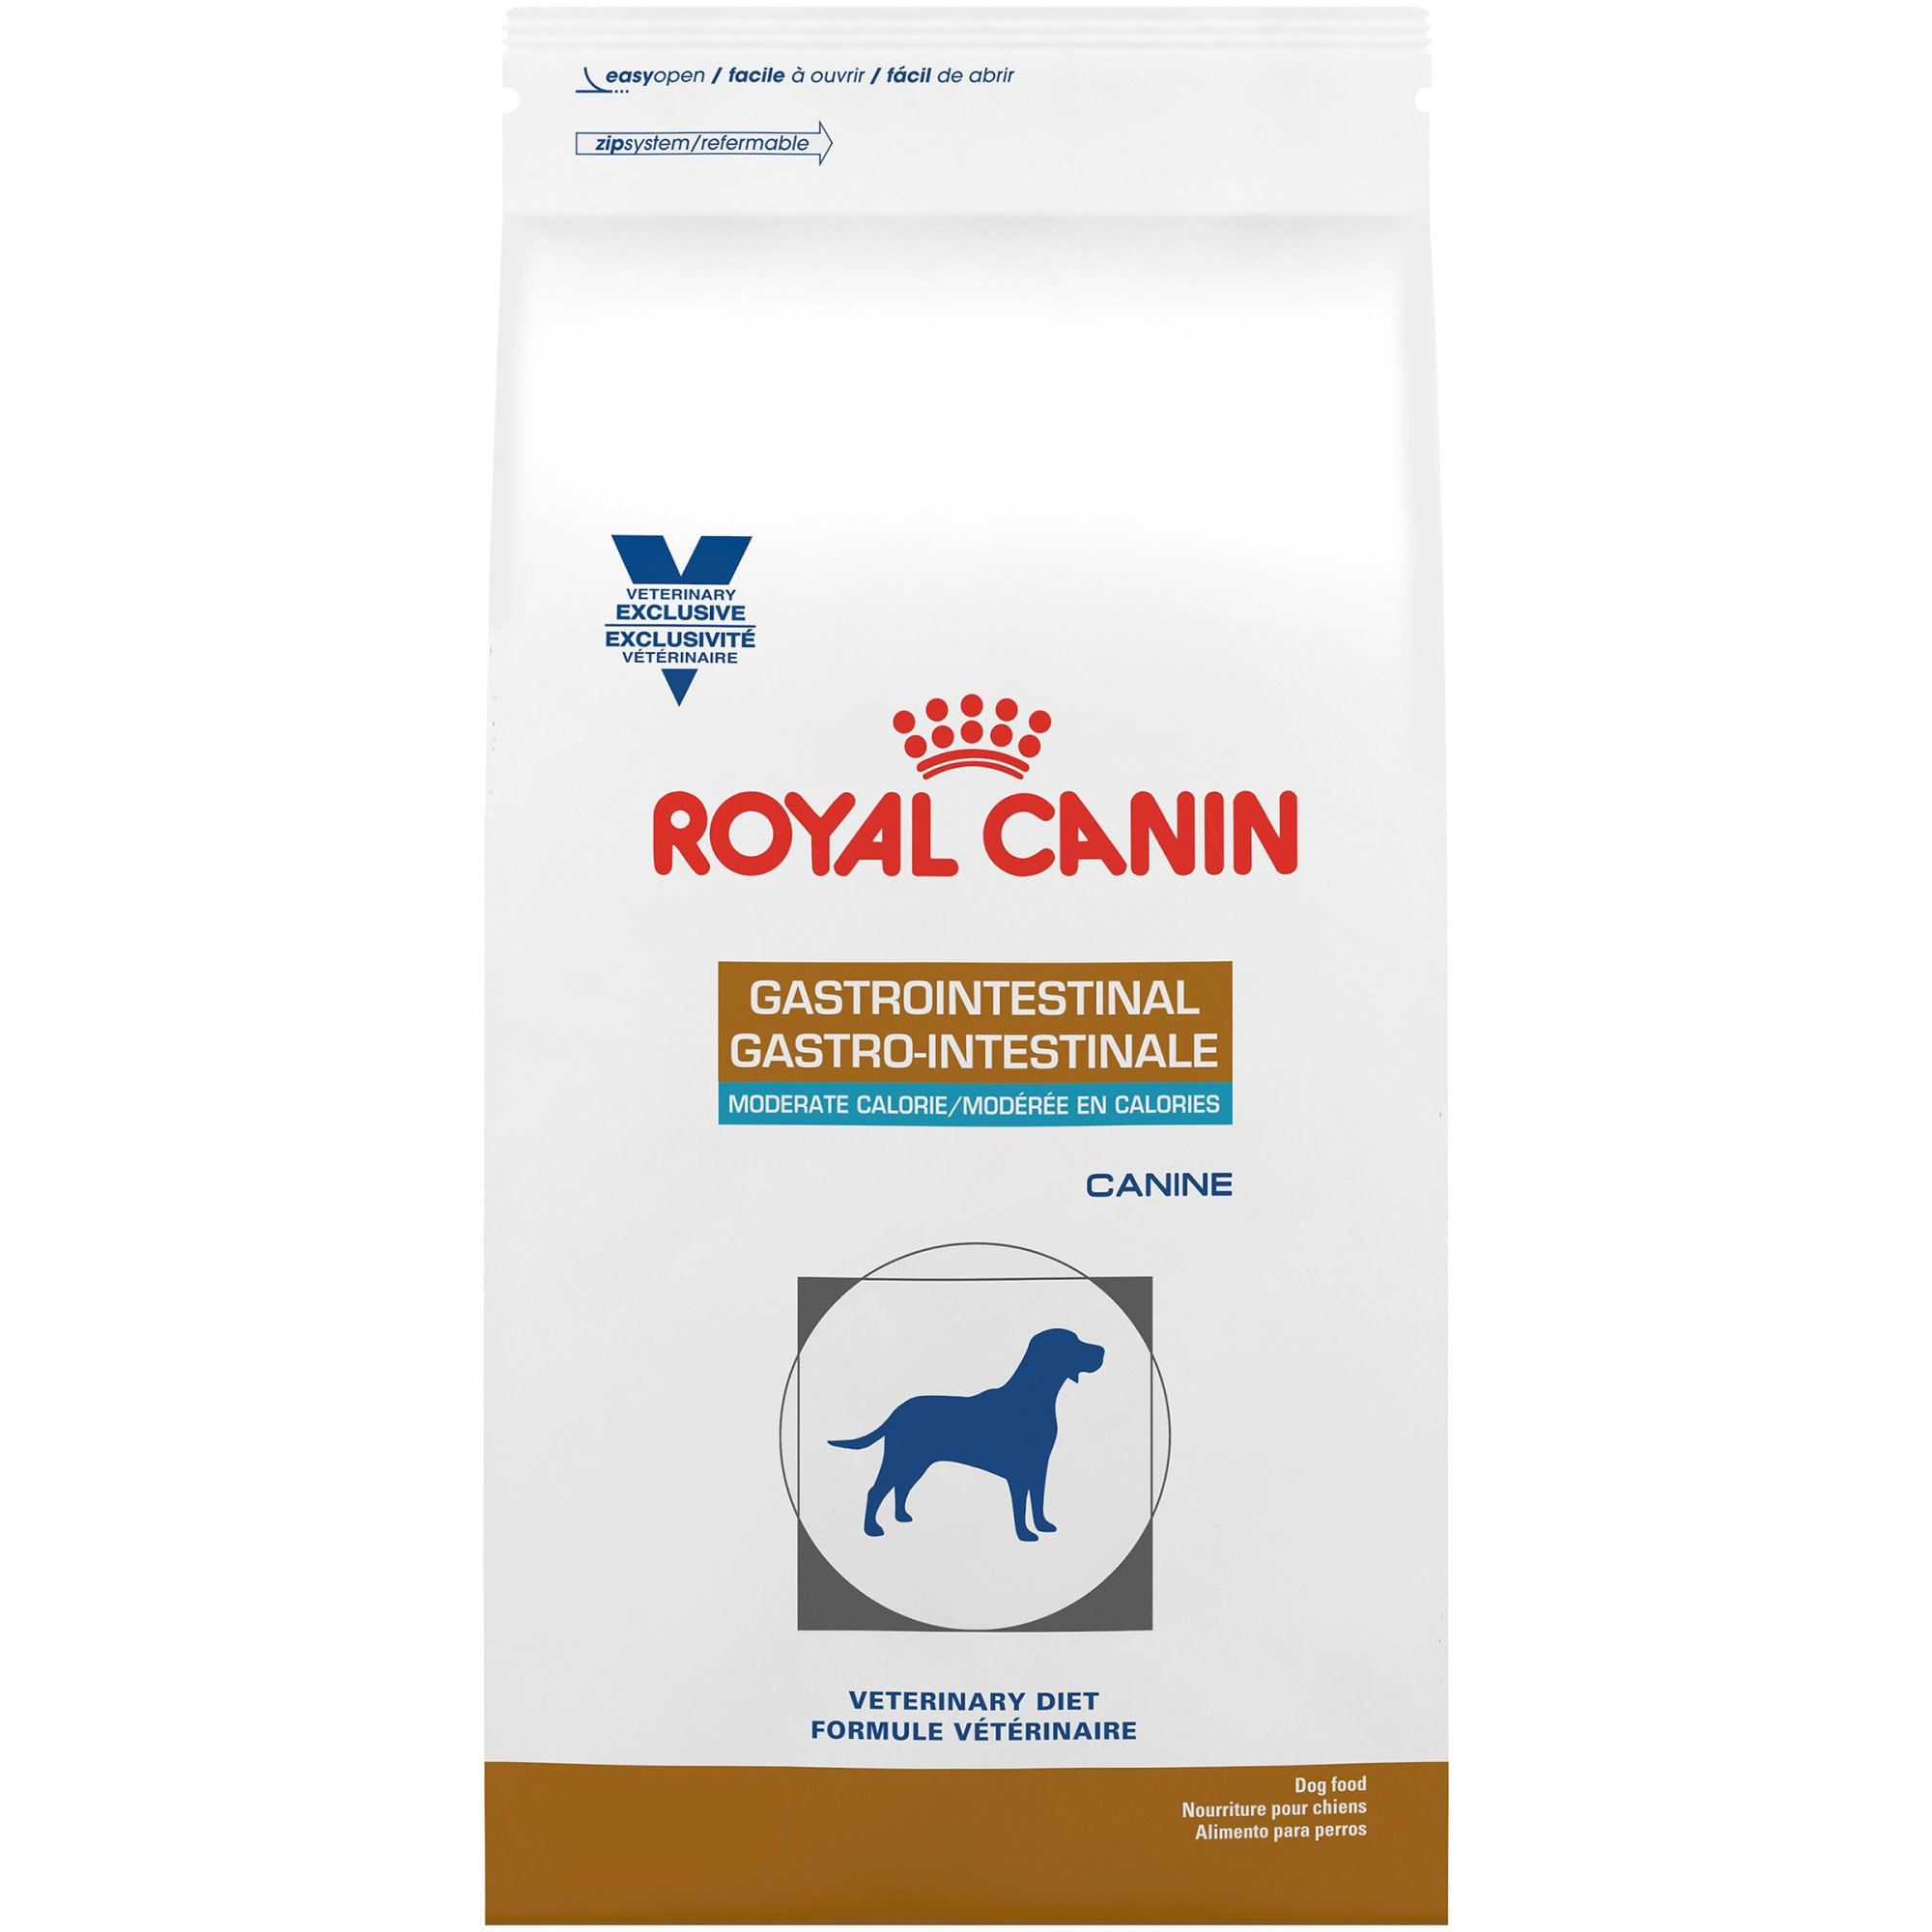 Royal Canin Veterinary Diet Canine Gastrointestinal Moderate